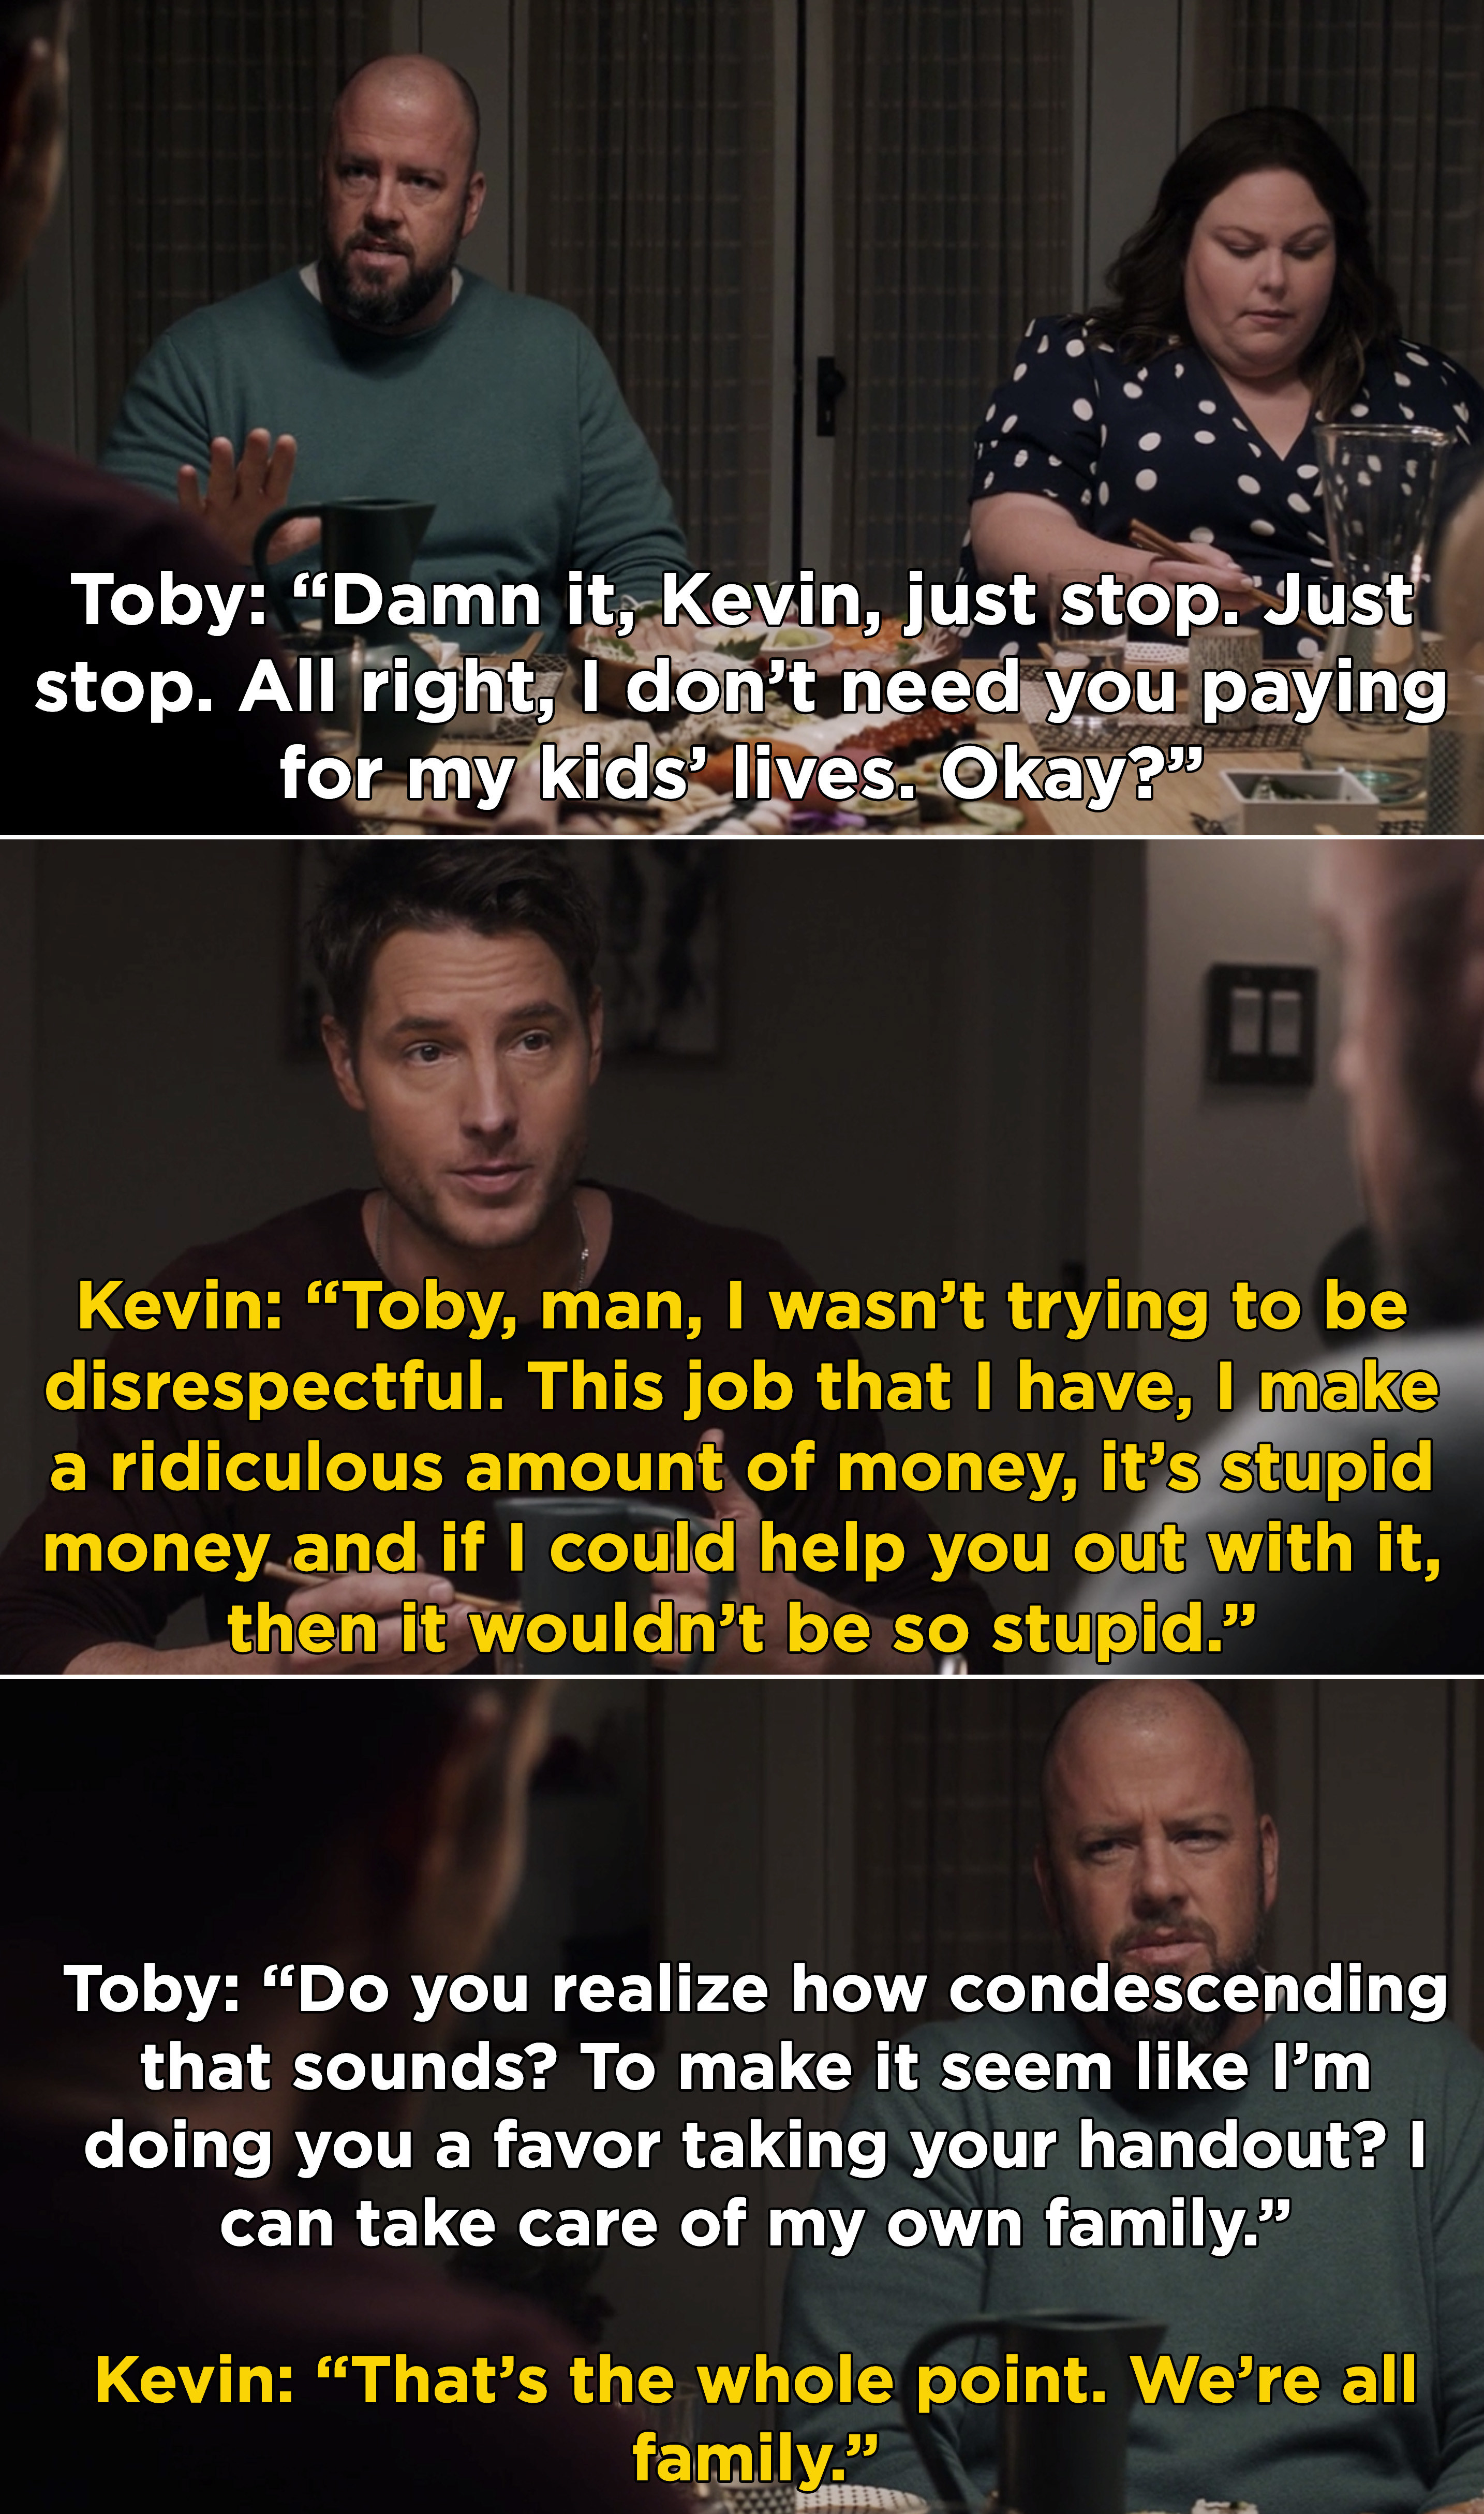 Toby telling Kevin that he doesn't want his money because he can take care of his own family